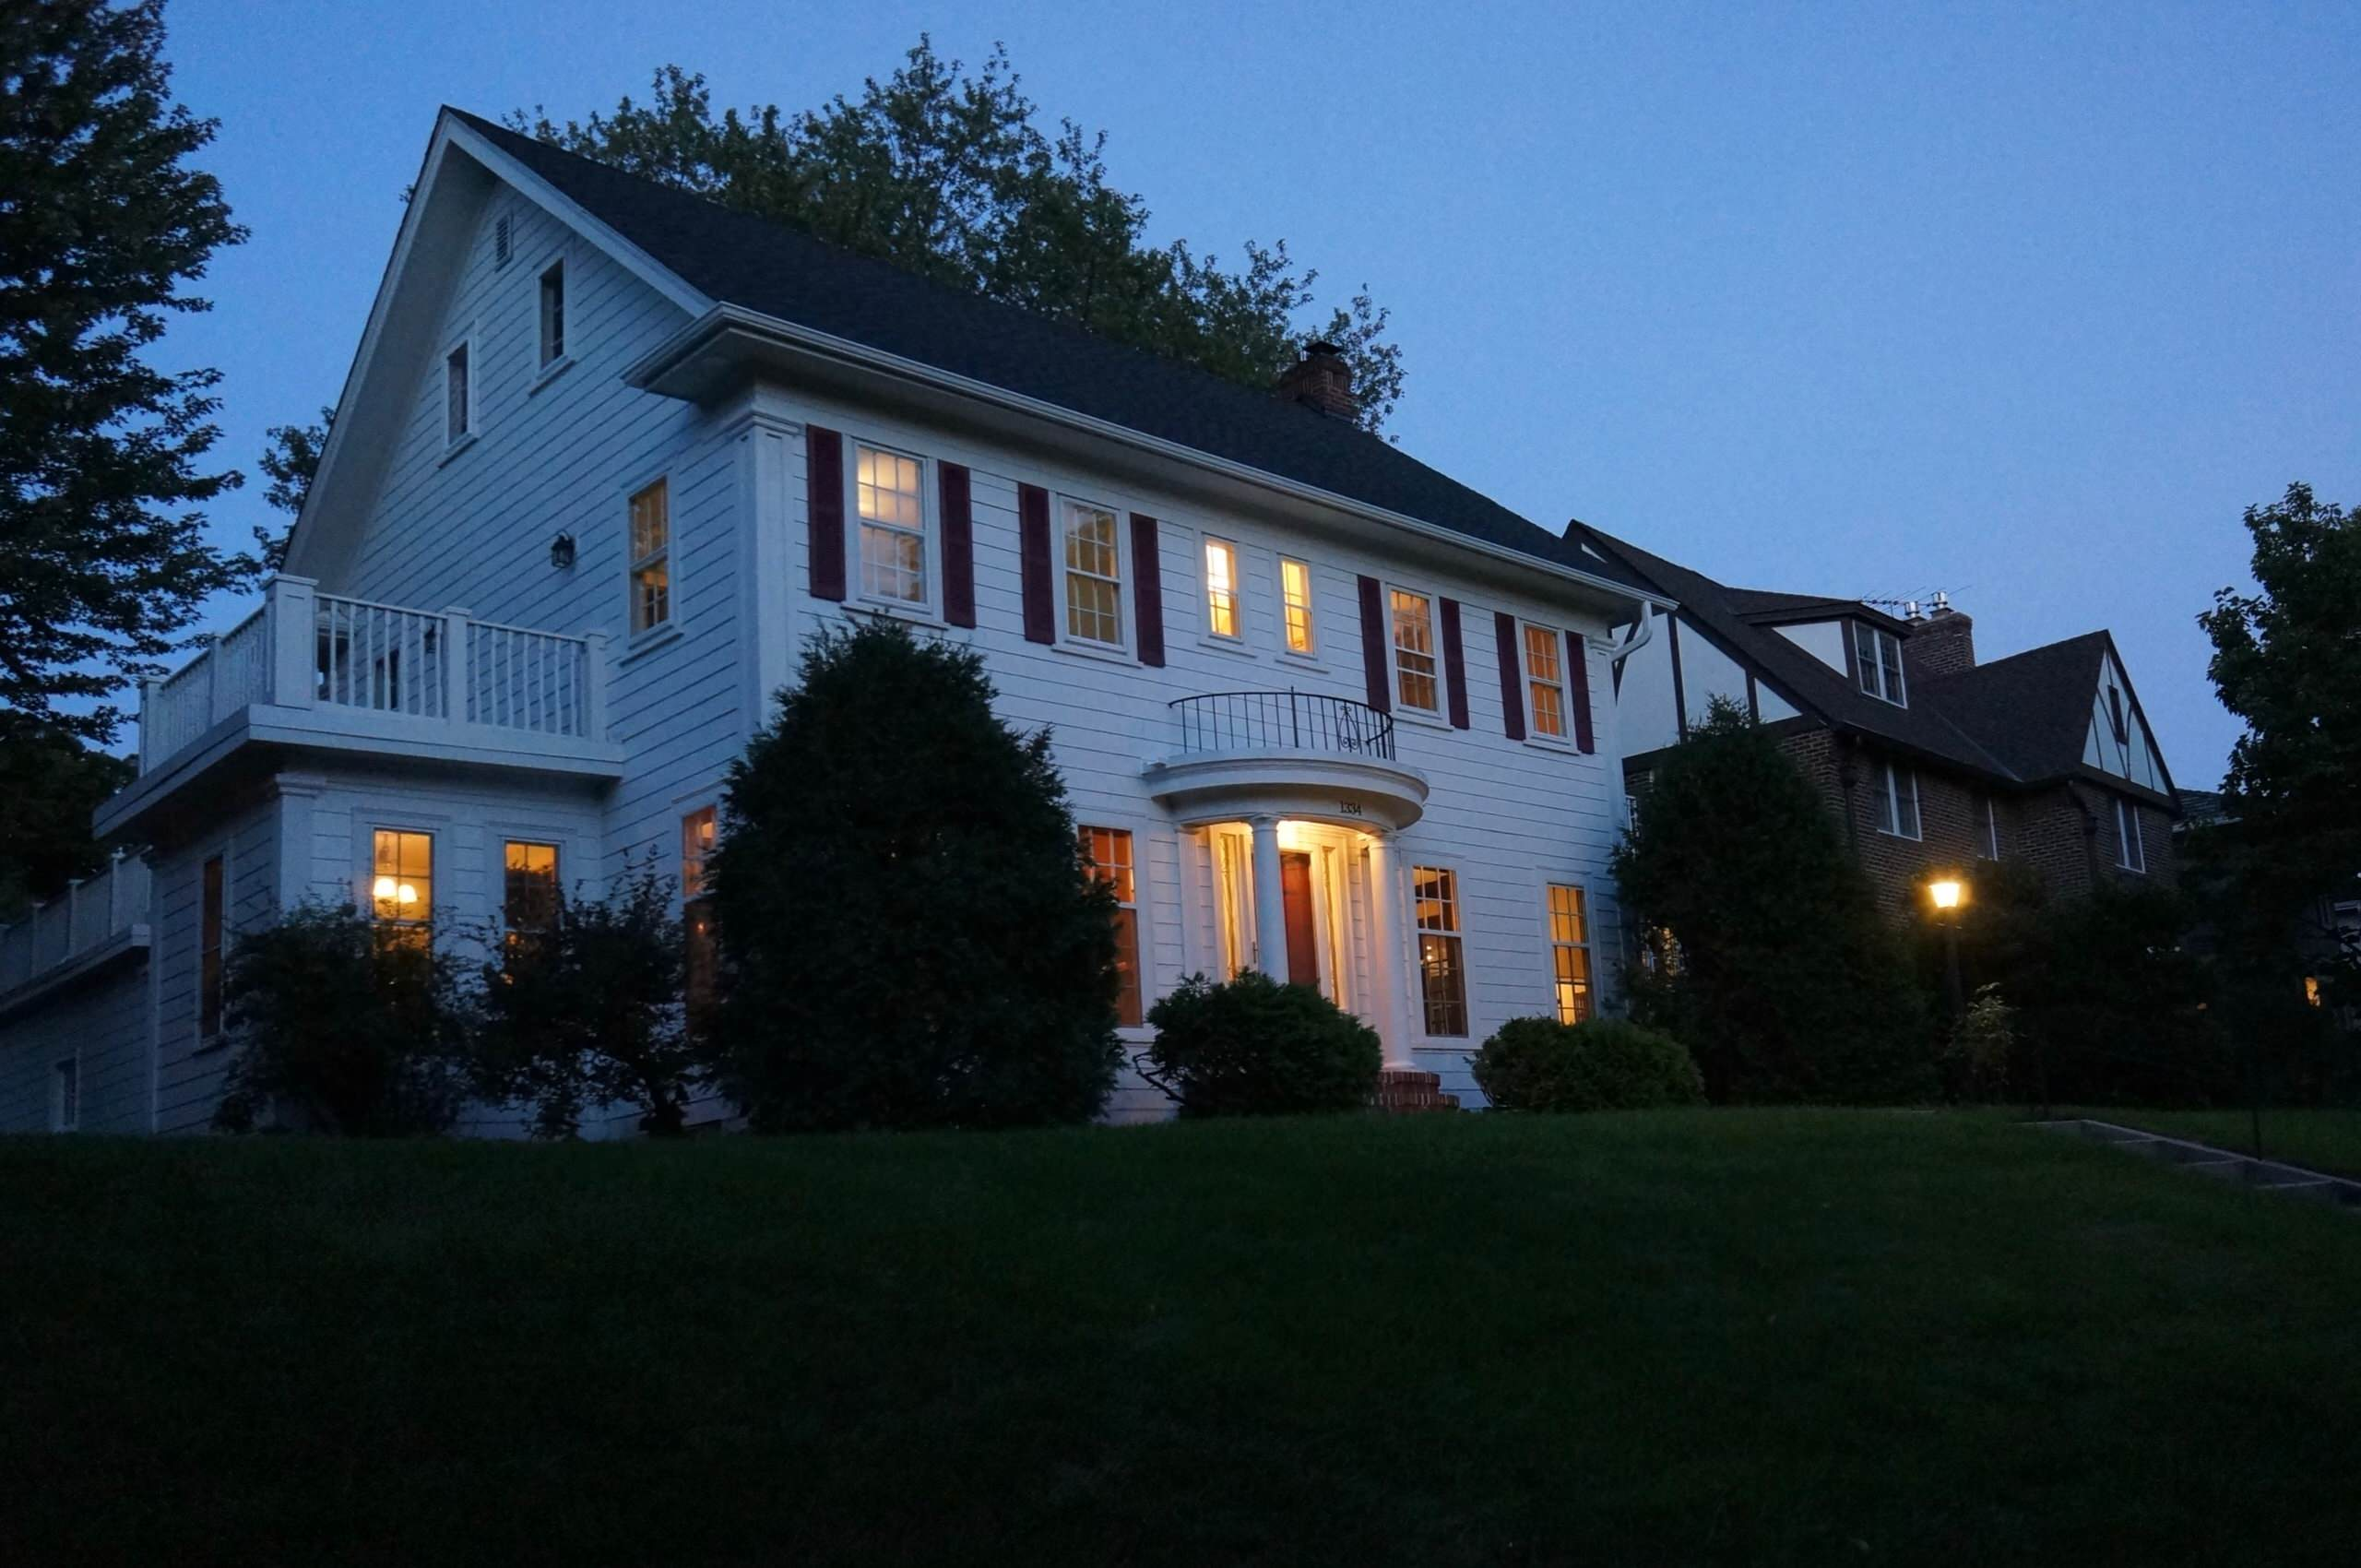 Parkway Colonial Revival